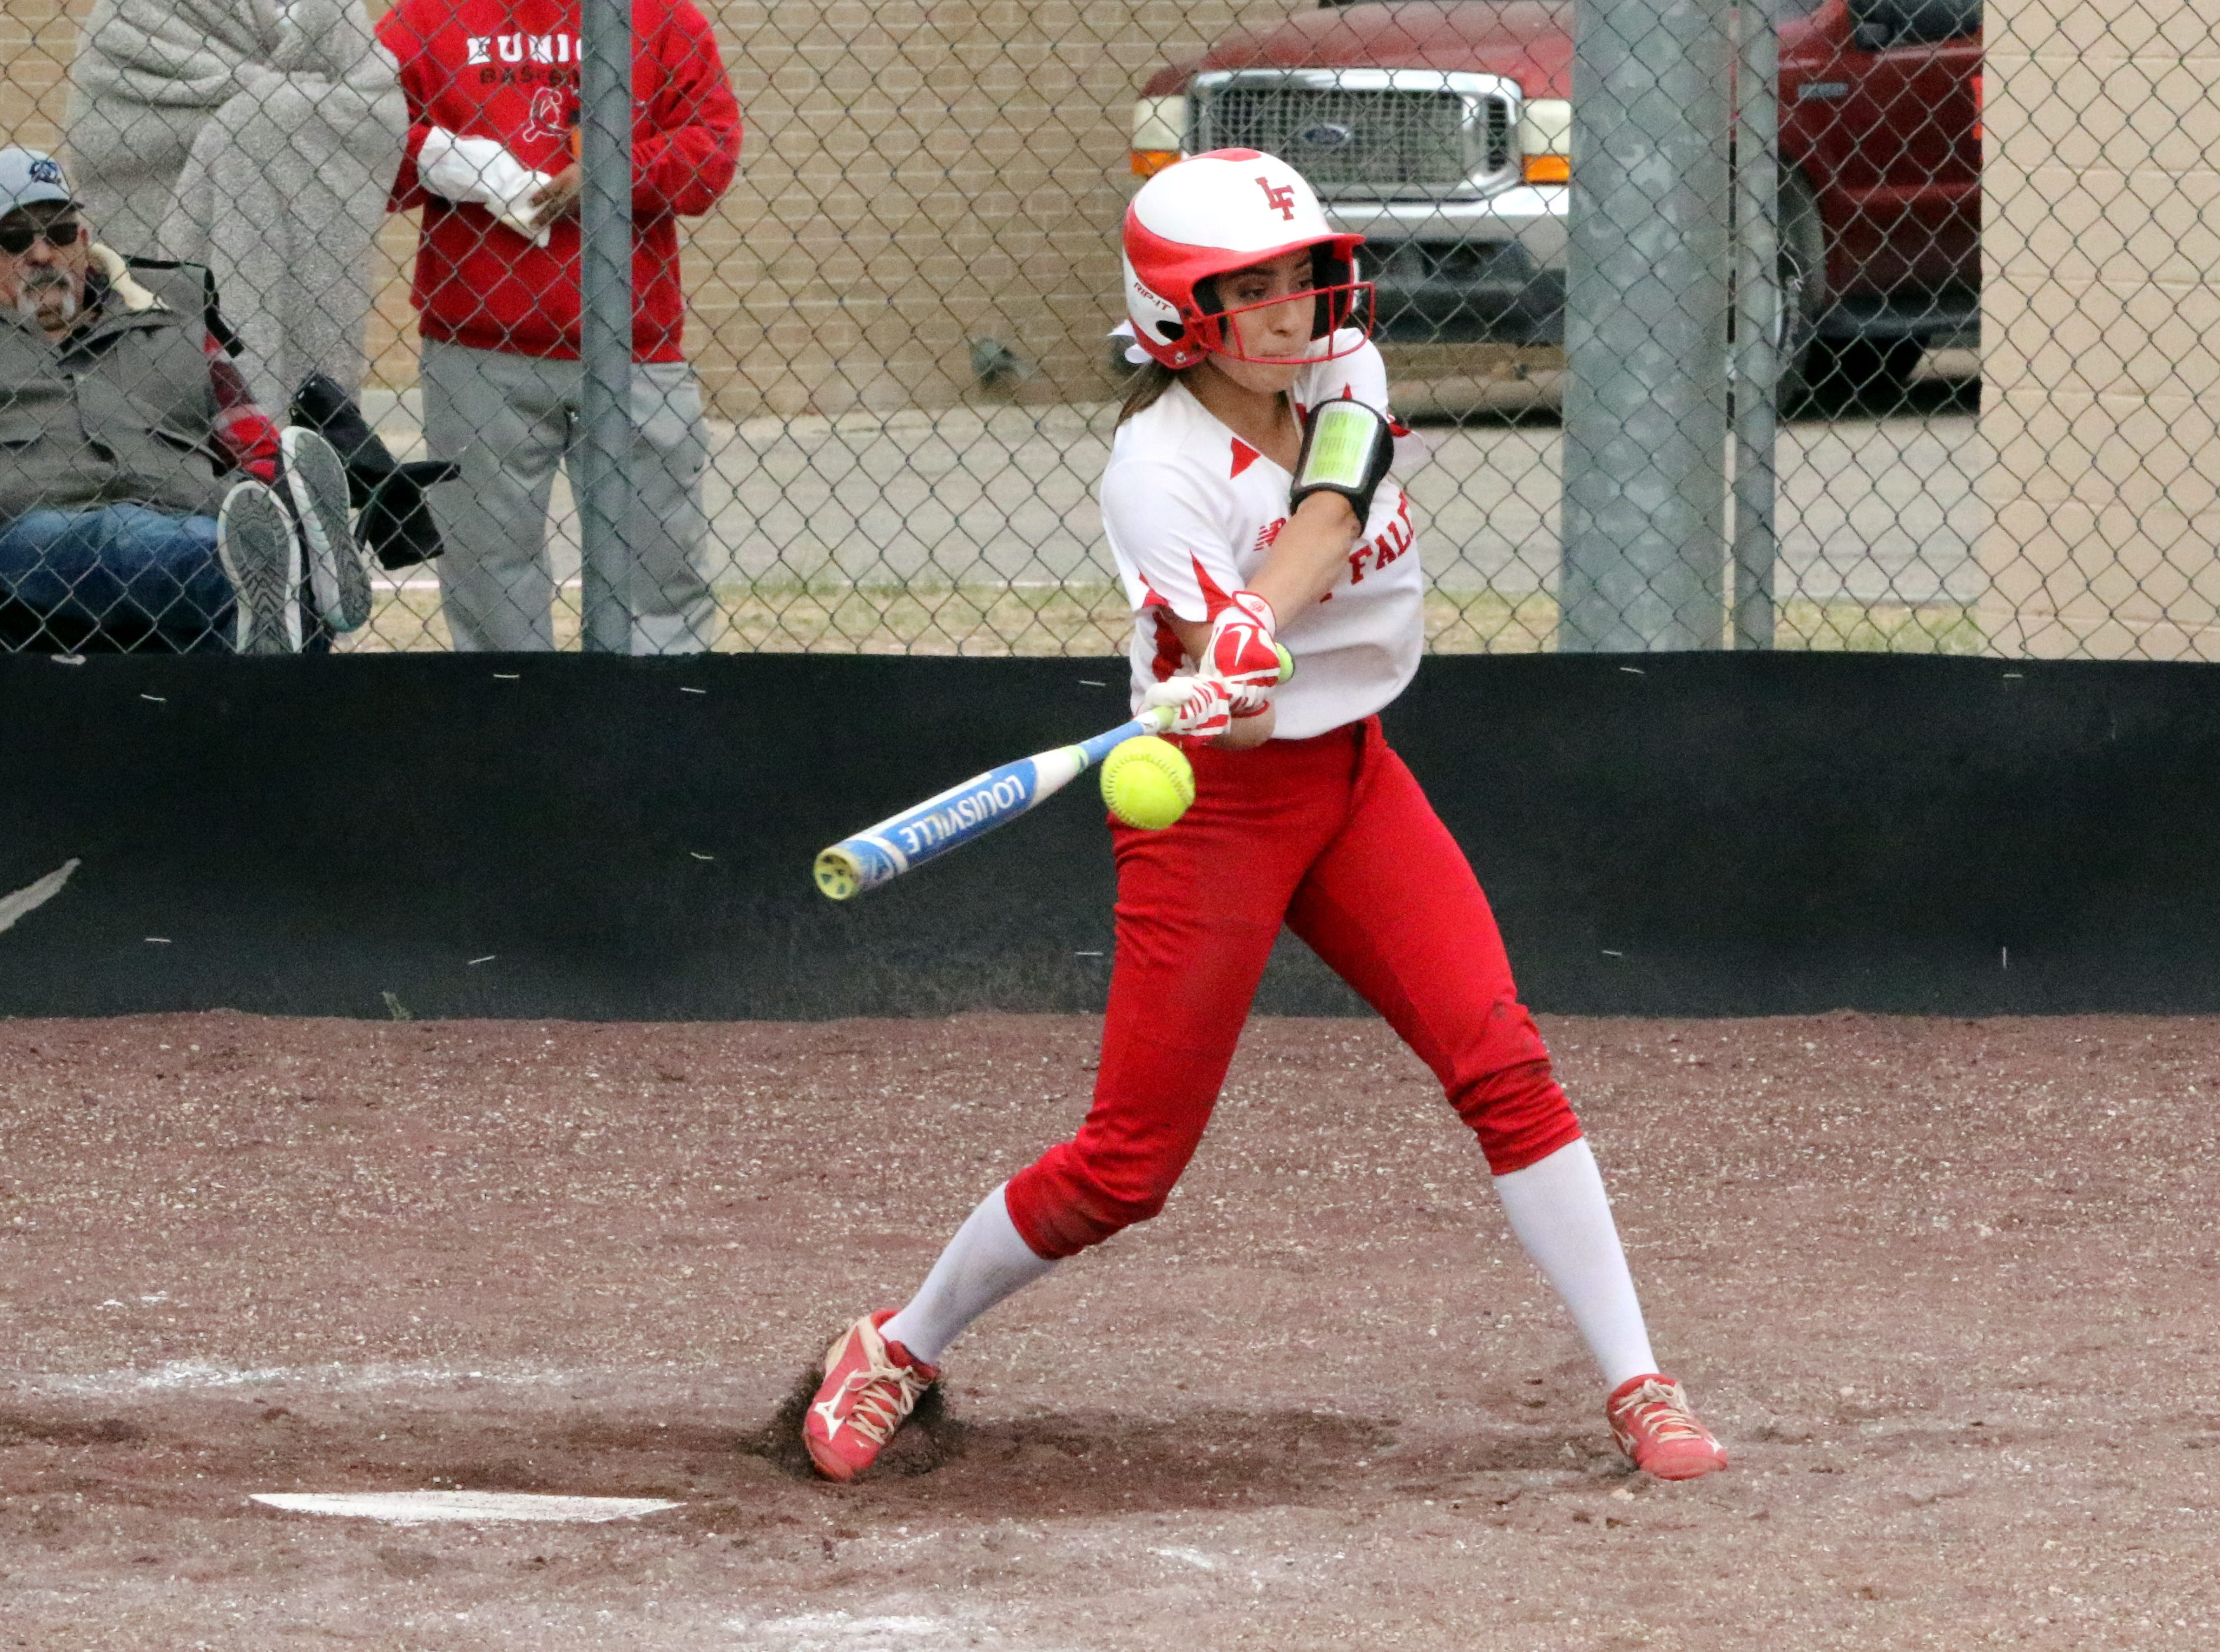 Anyssa Rodriguez connects with a pitch during Game 2 of Saturday's doubleheader. Eunice won Game 1, 13-12 and Loving won Game 2, 16-6.